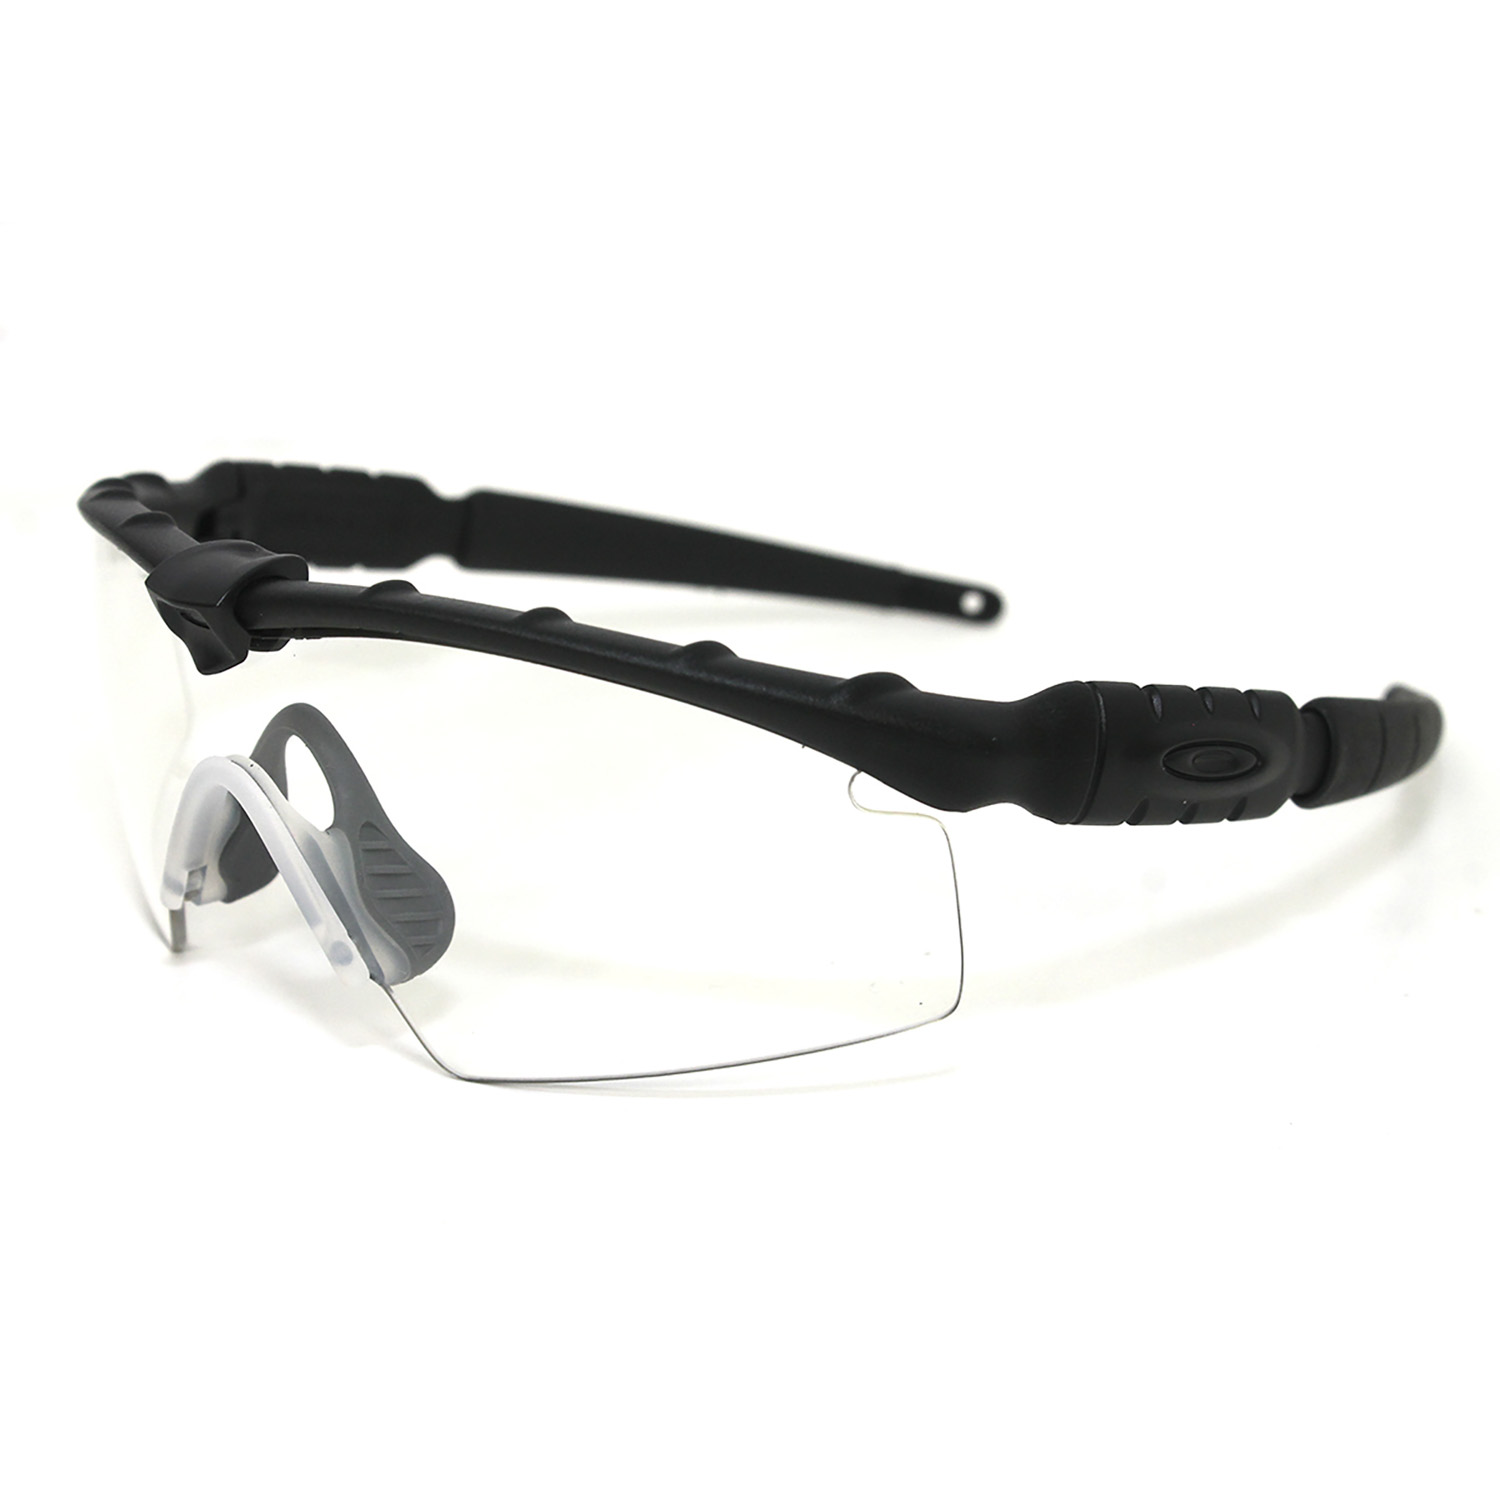 Strike Si Frame 2 Glasses Ballistic Ip Photochromic 0 Oakley M 3KJTlF1c